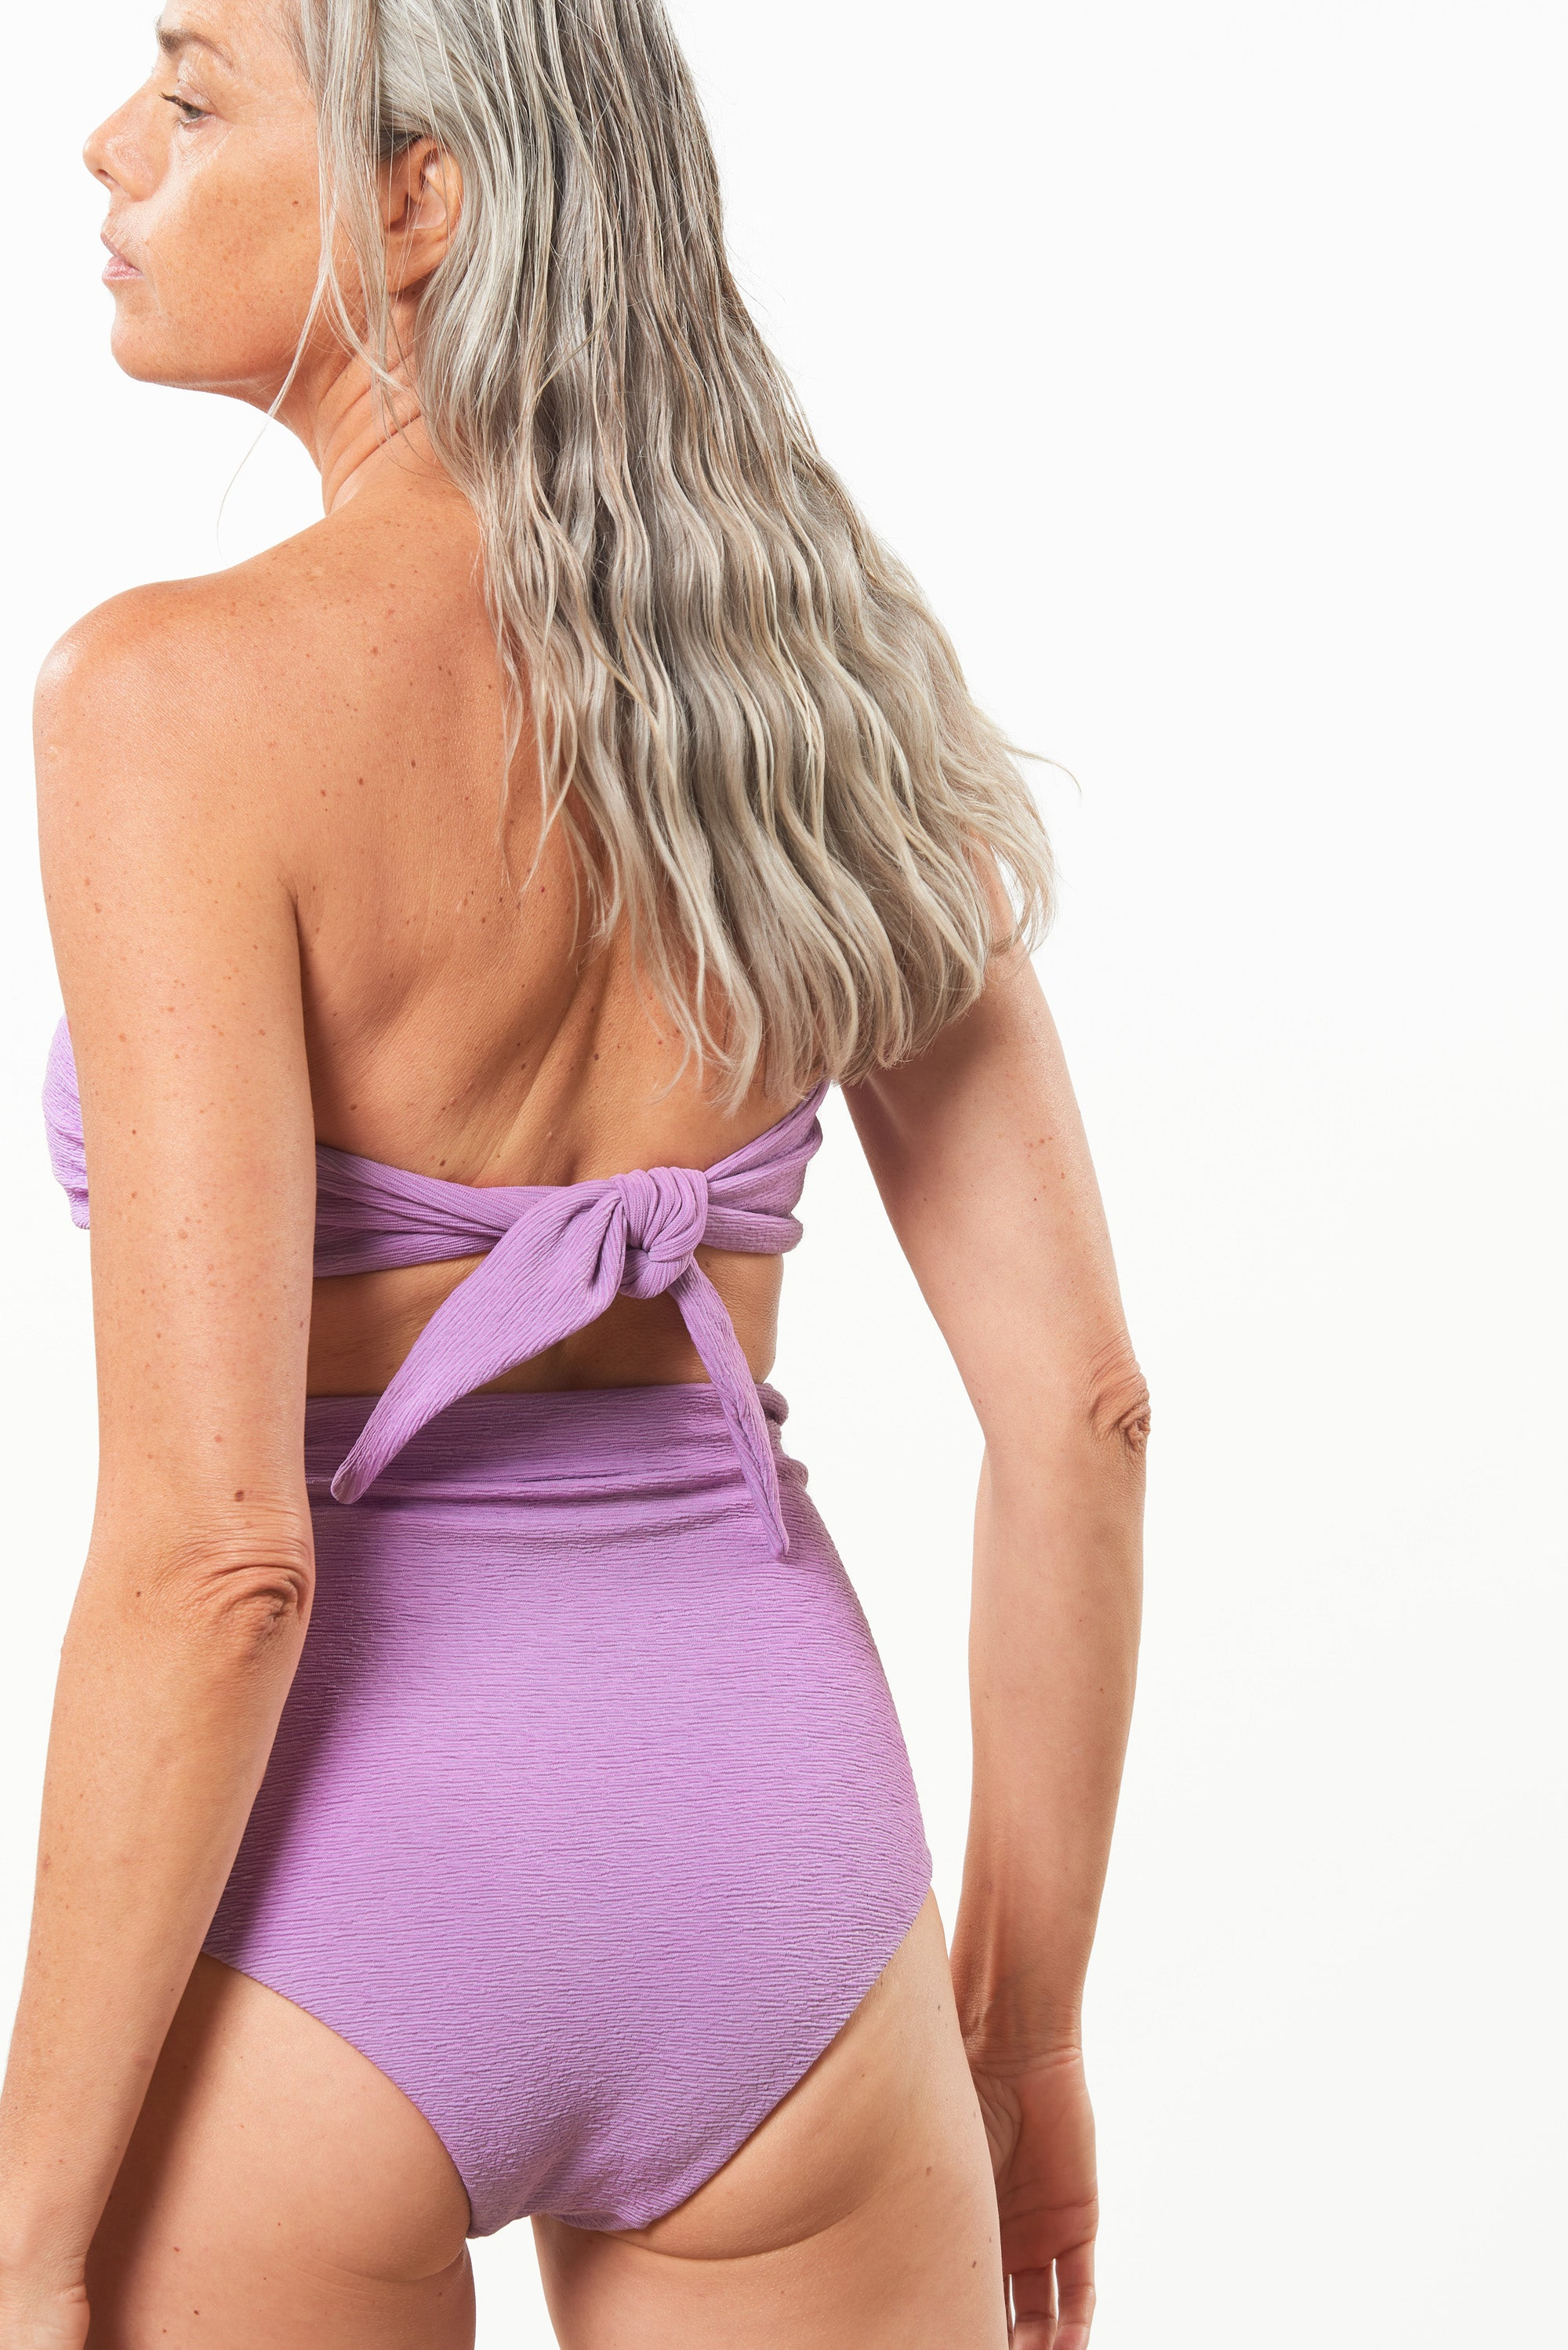 Mara Hoffman Lavender Jay Bikini Bottom in ECONYL (back detail)